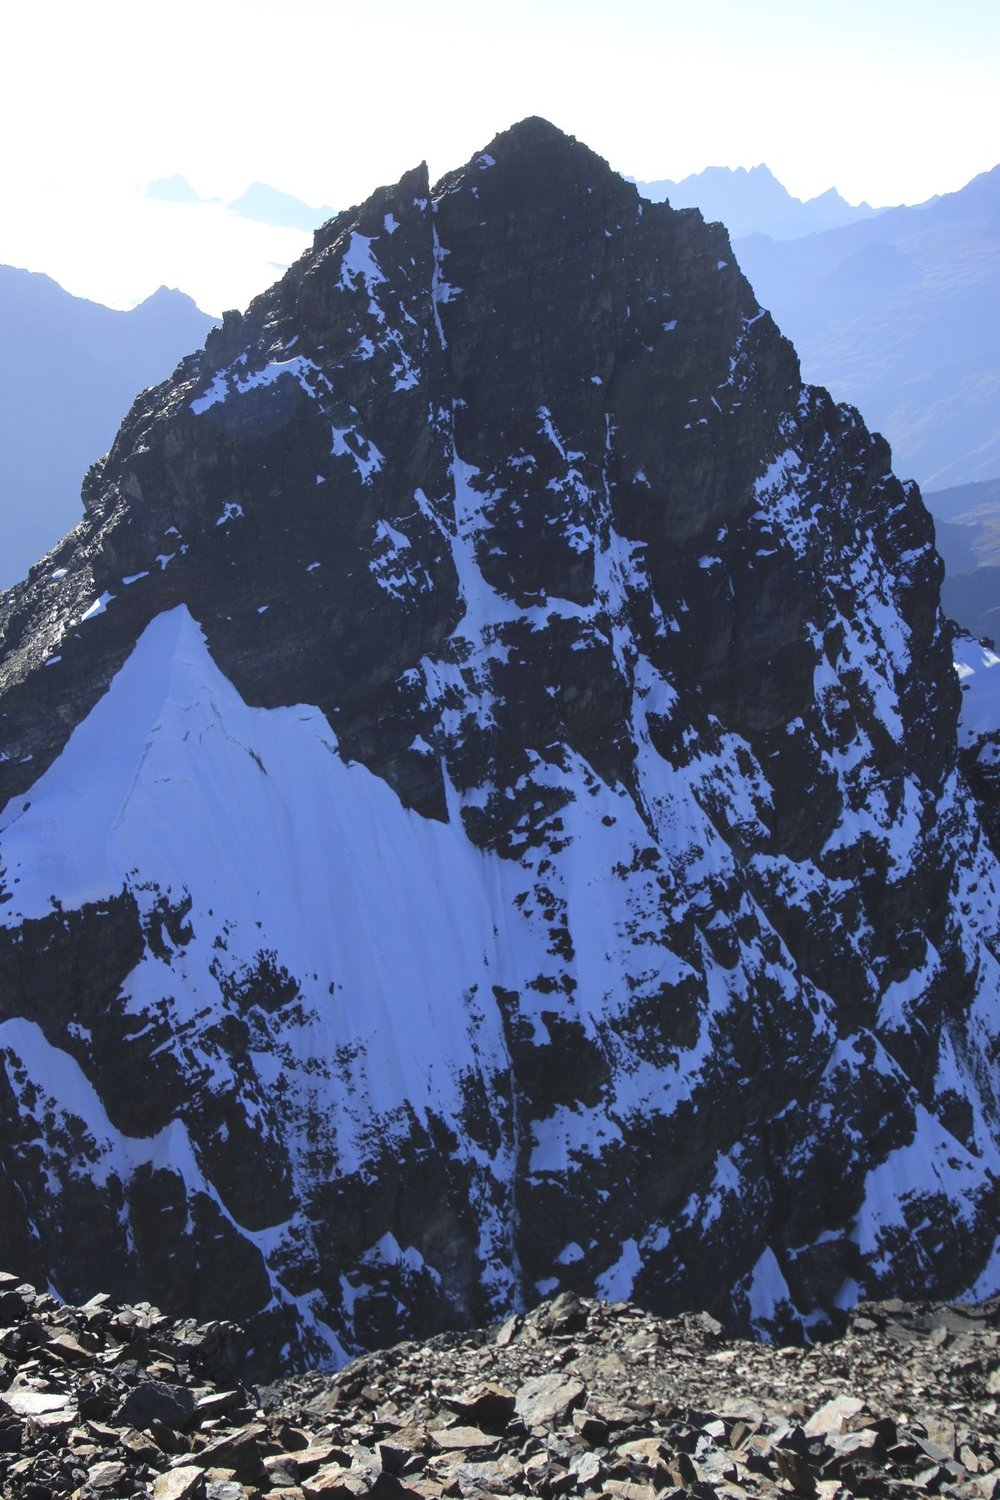 Innominado 5,320m seen from the summit of Pequeno Alpamayo.